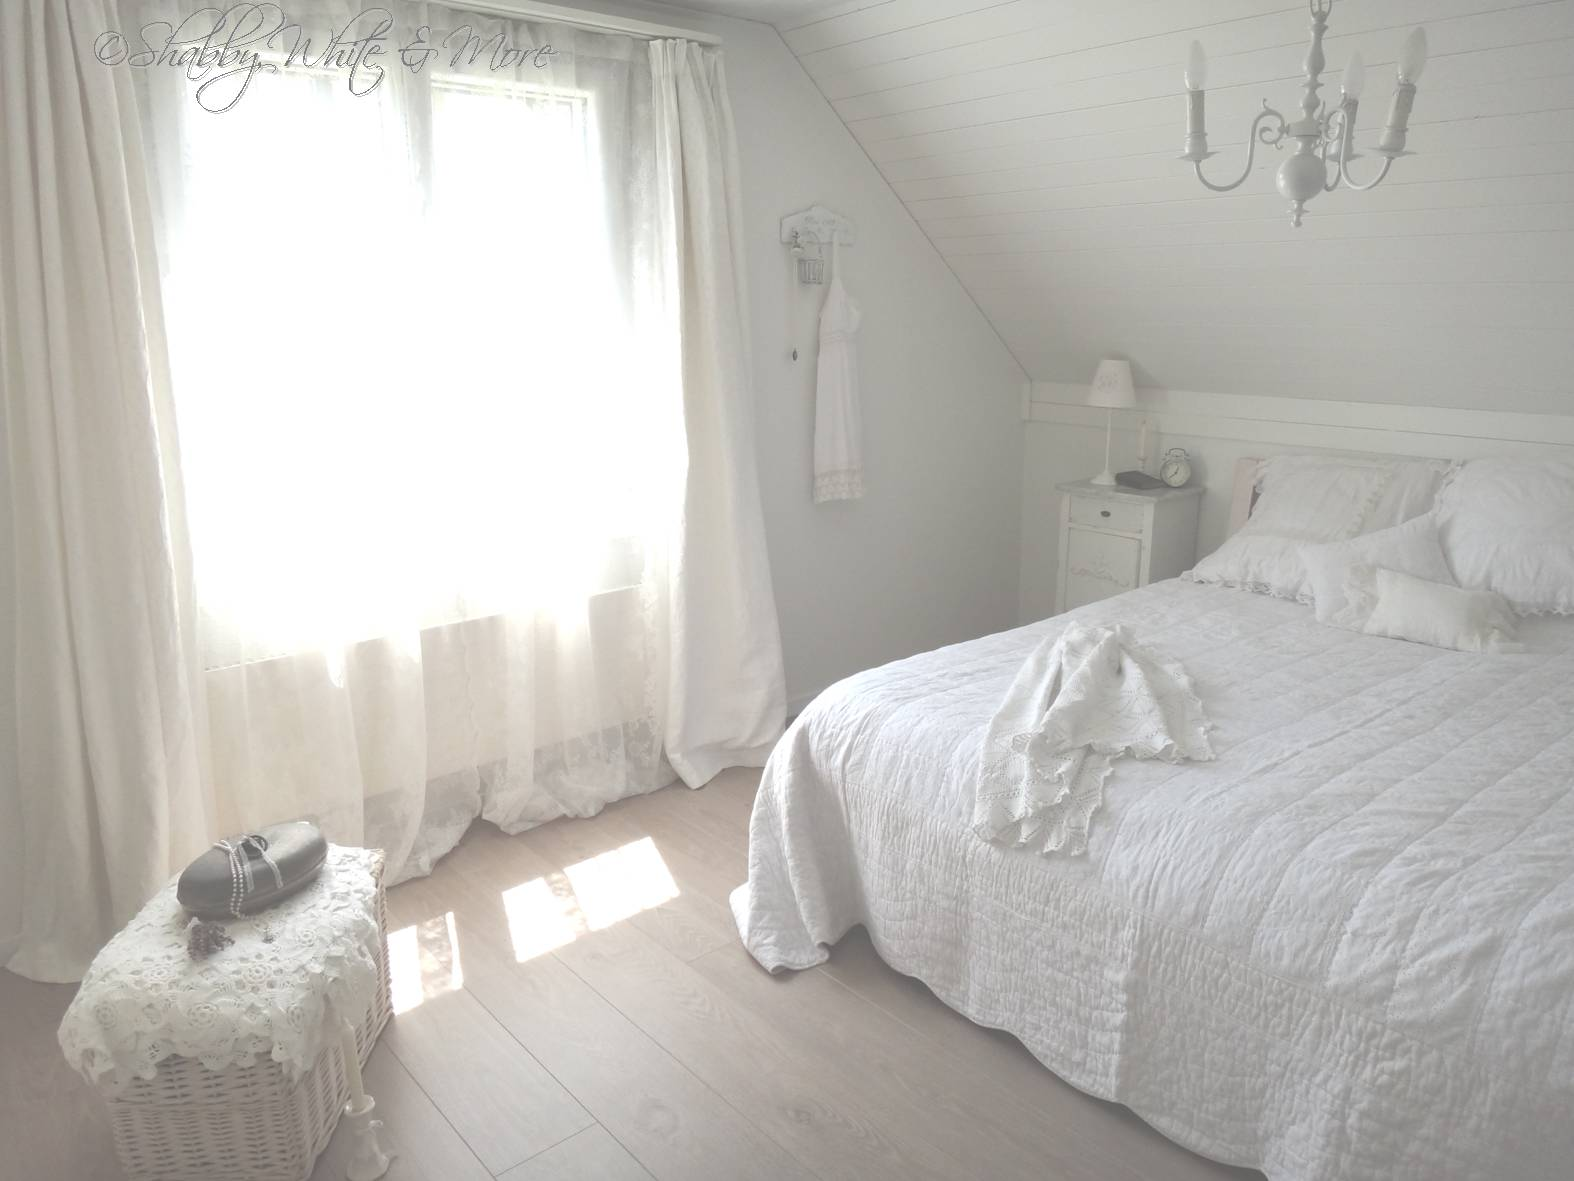 Shabby white and more neues schlafzimmer - Schlafzimmer shabby ...